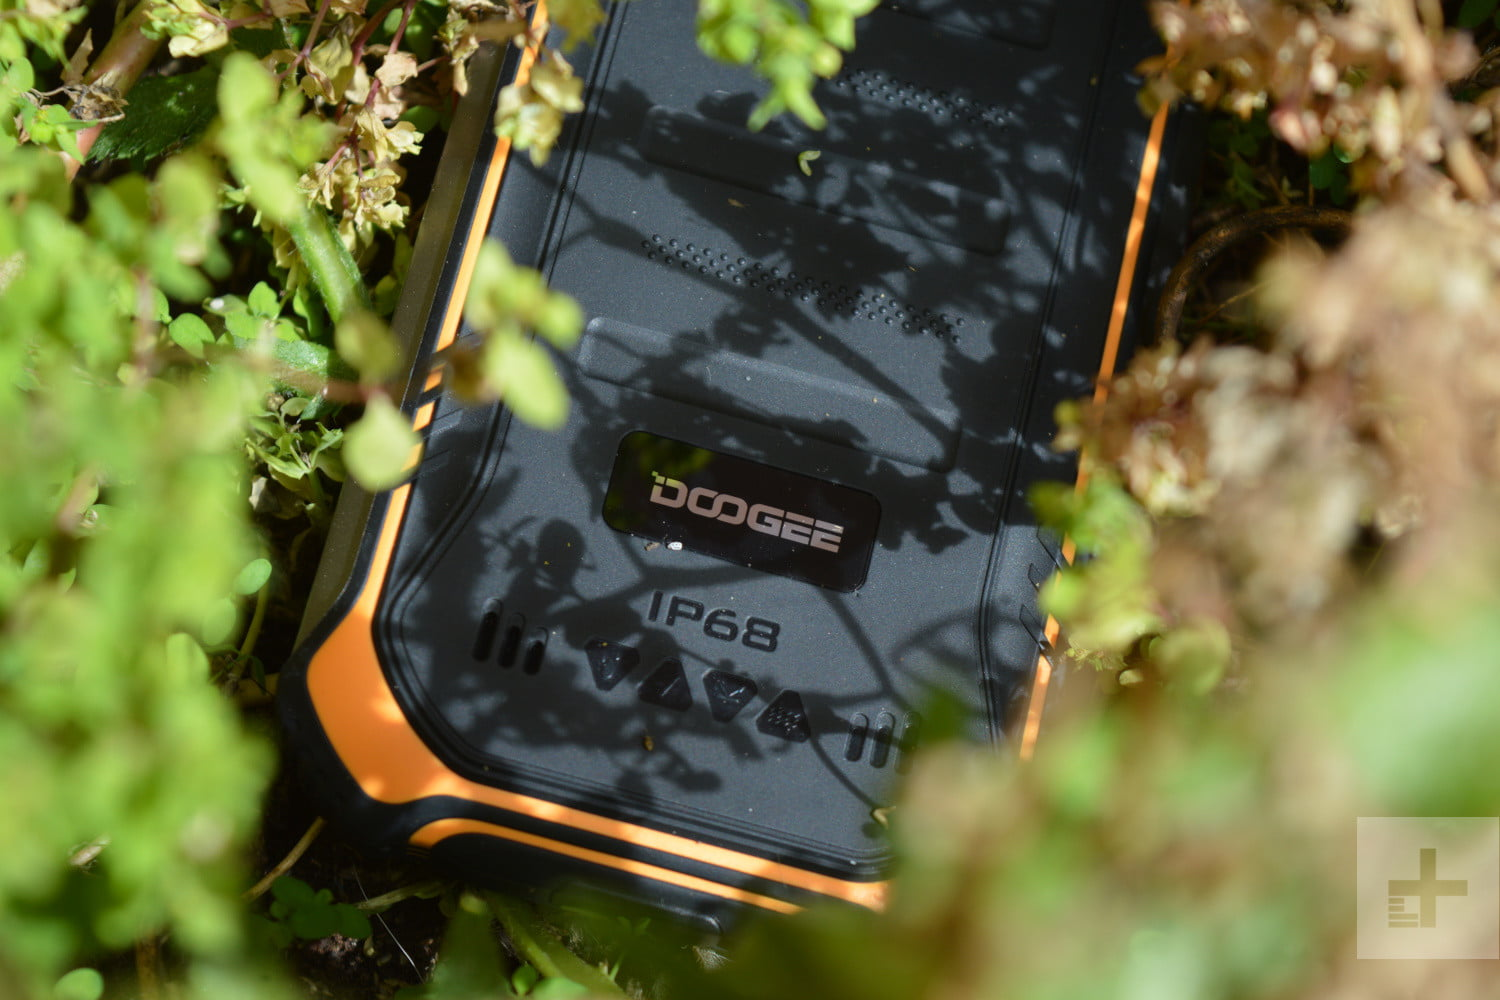 doogee s40 review in bush close up logo